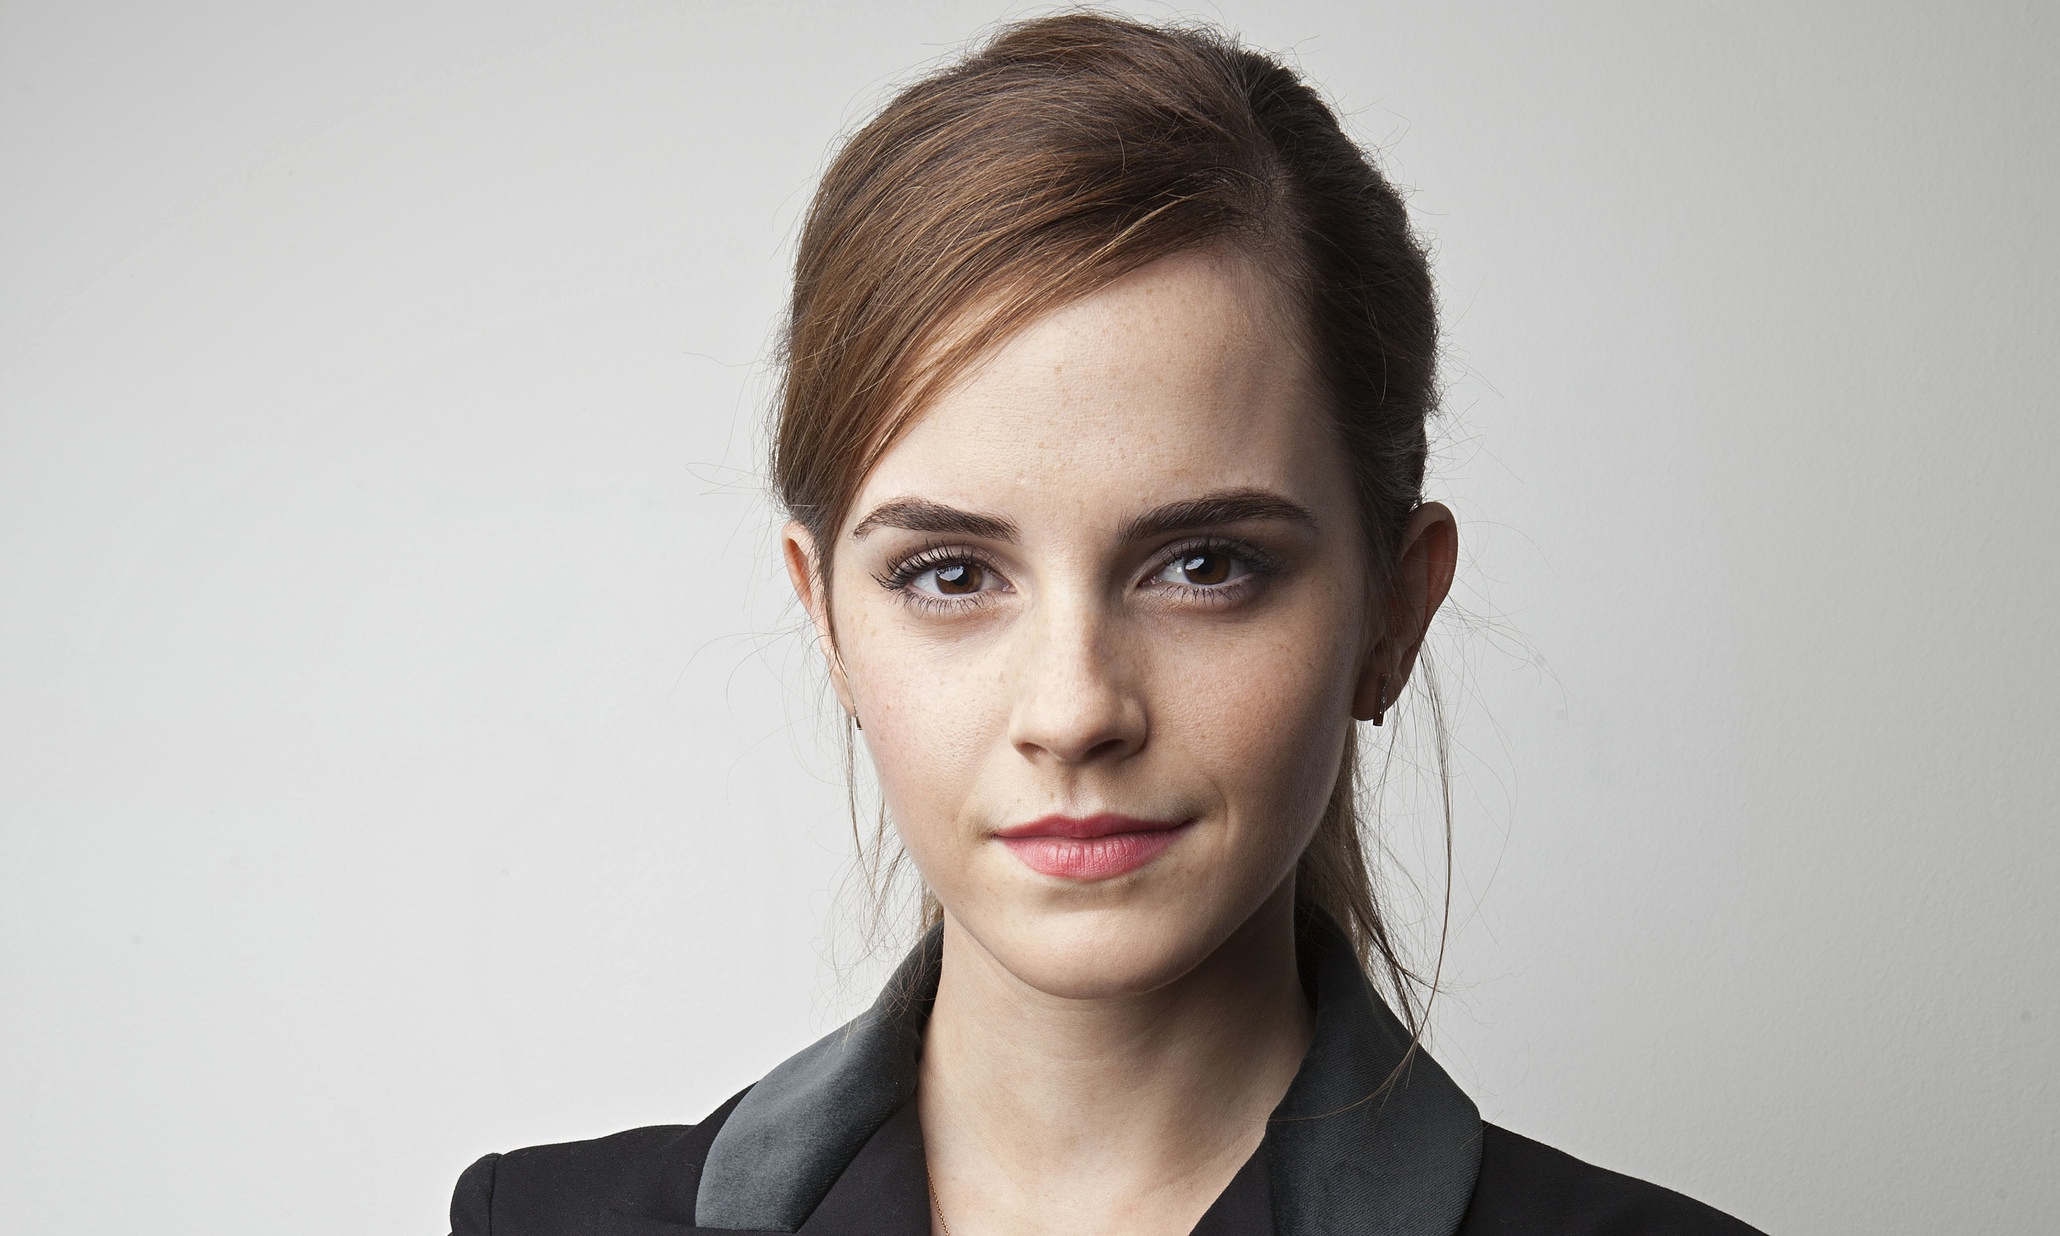 Emma Watson's speech has been watched more than 7m times on YouTube ...